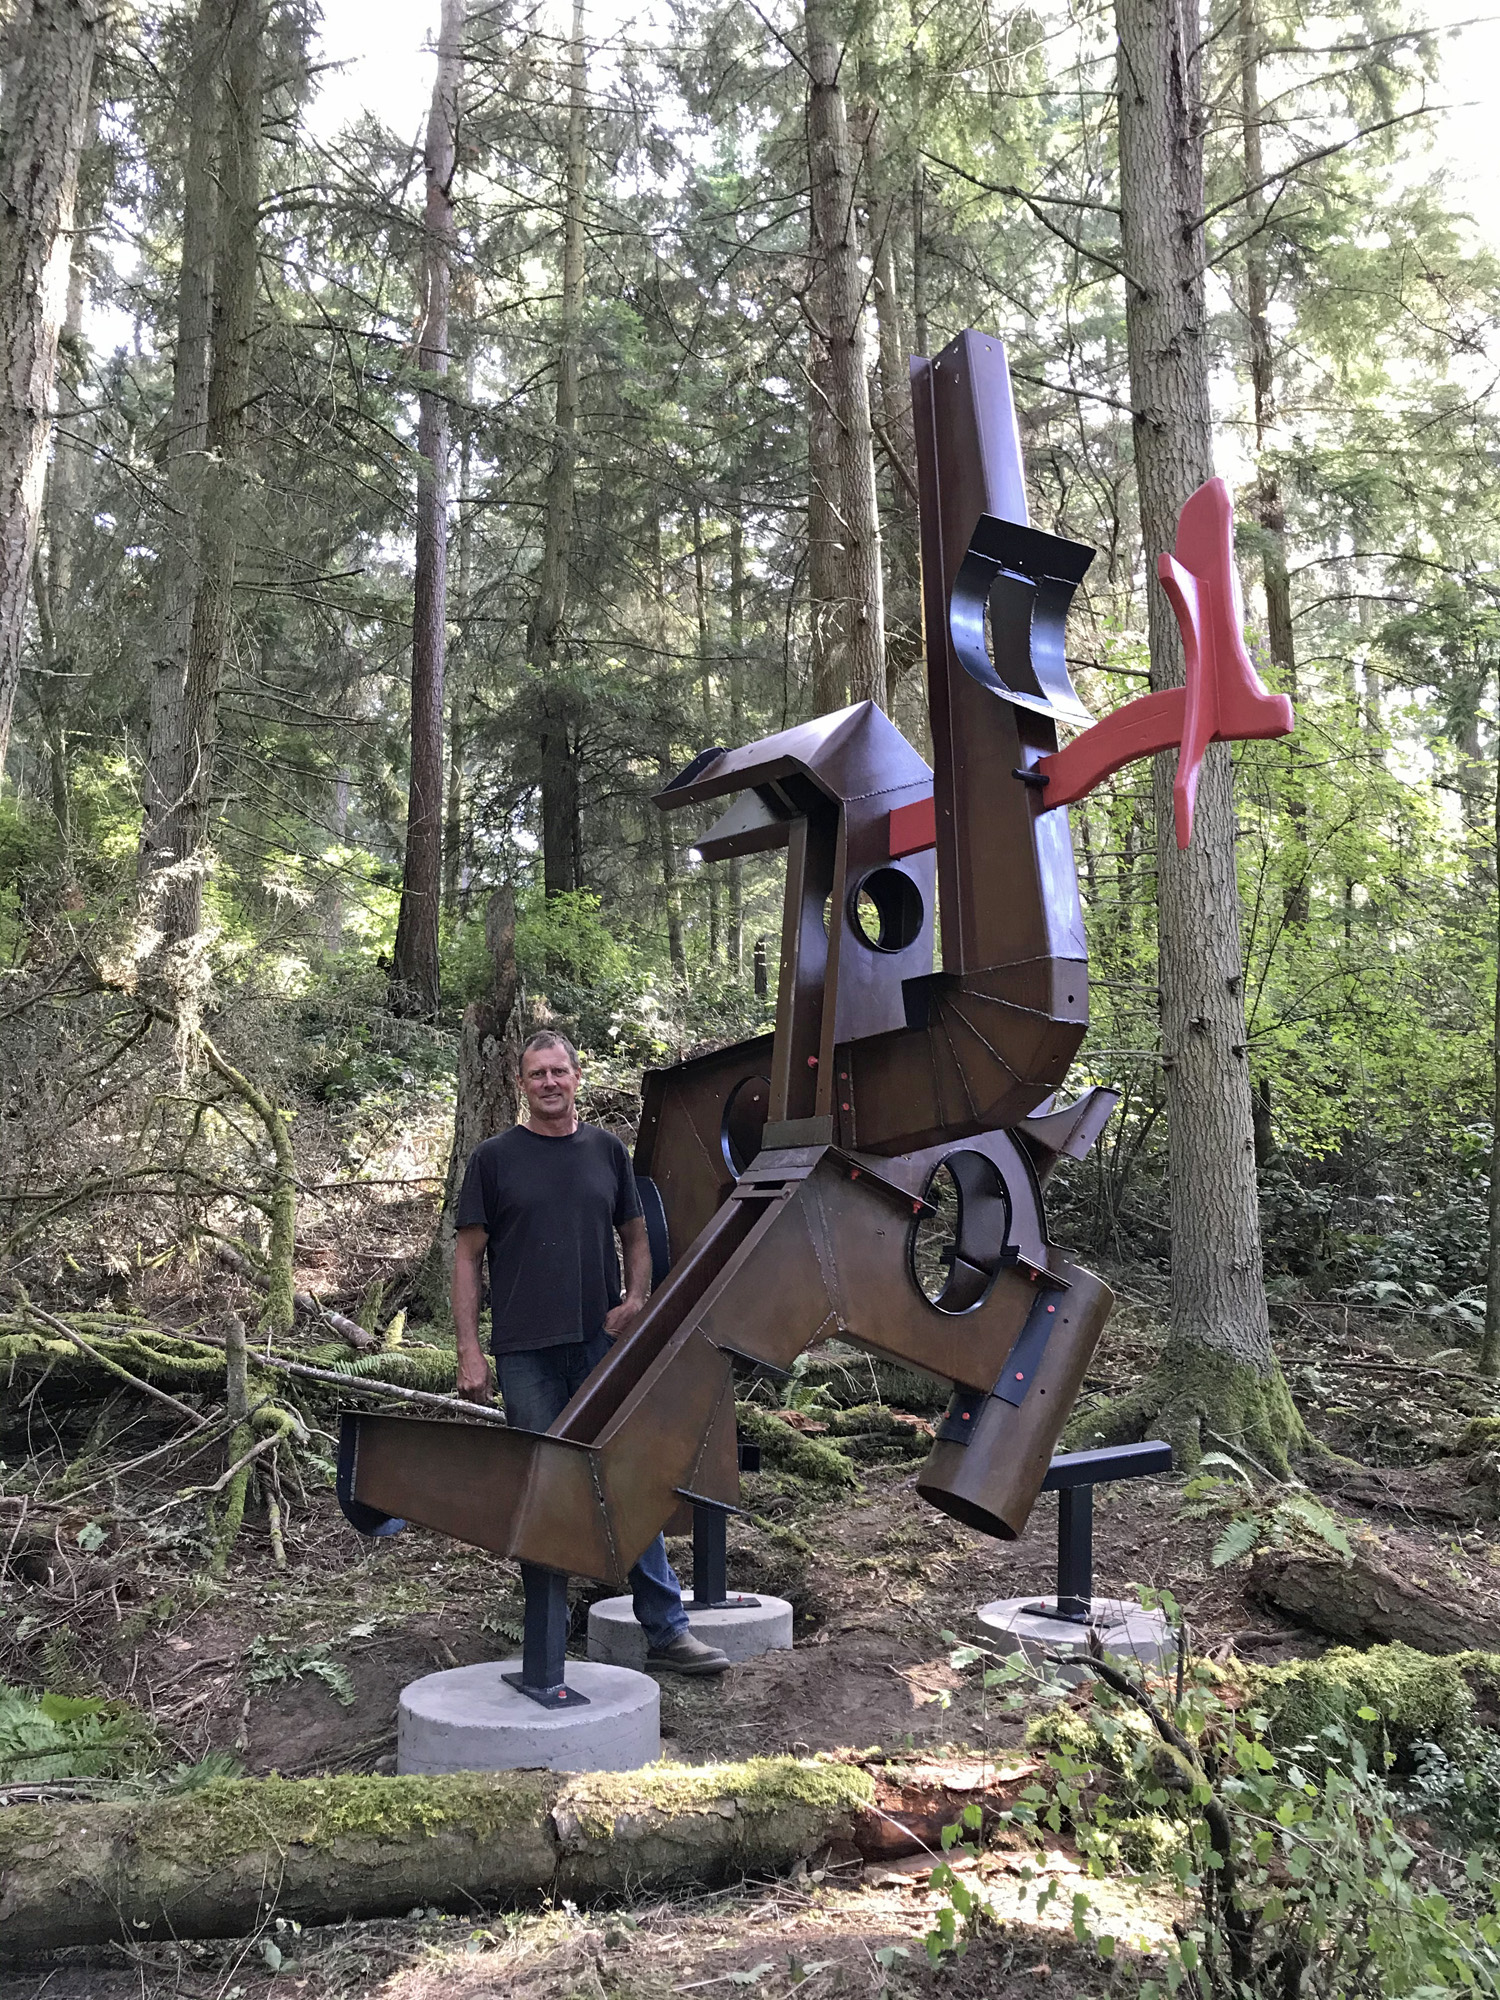 Sculptor MacRae Wylde with Stevo's Dream The Ultimate Flying Machine at Price Sculpture Forest